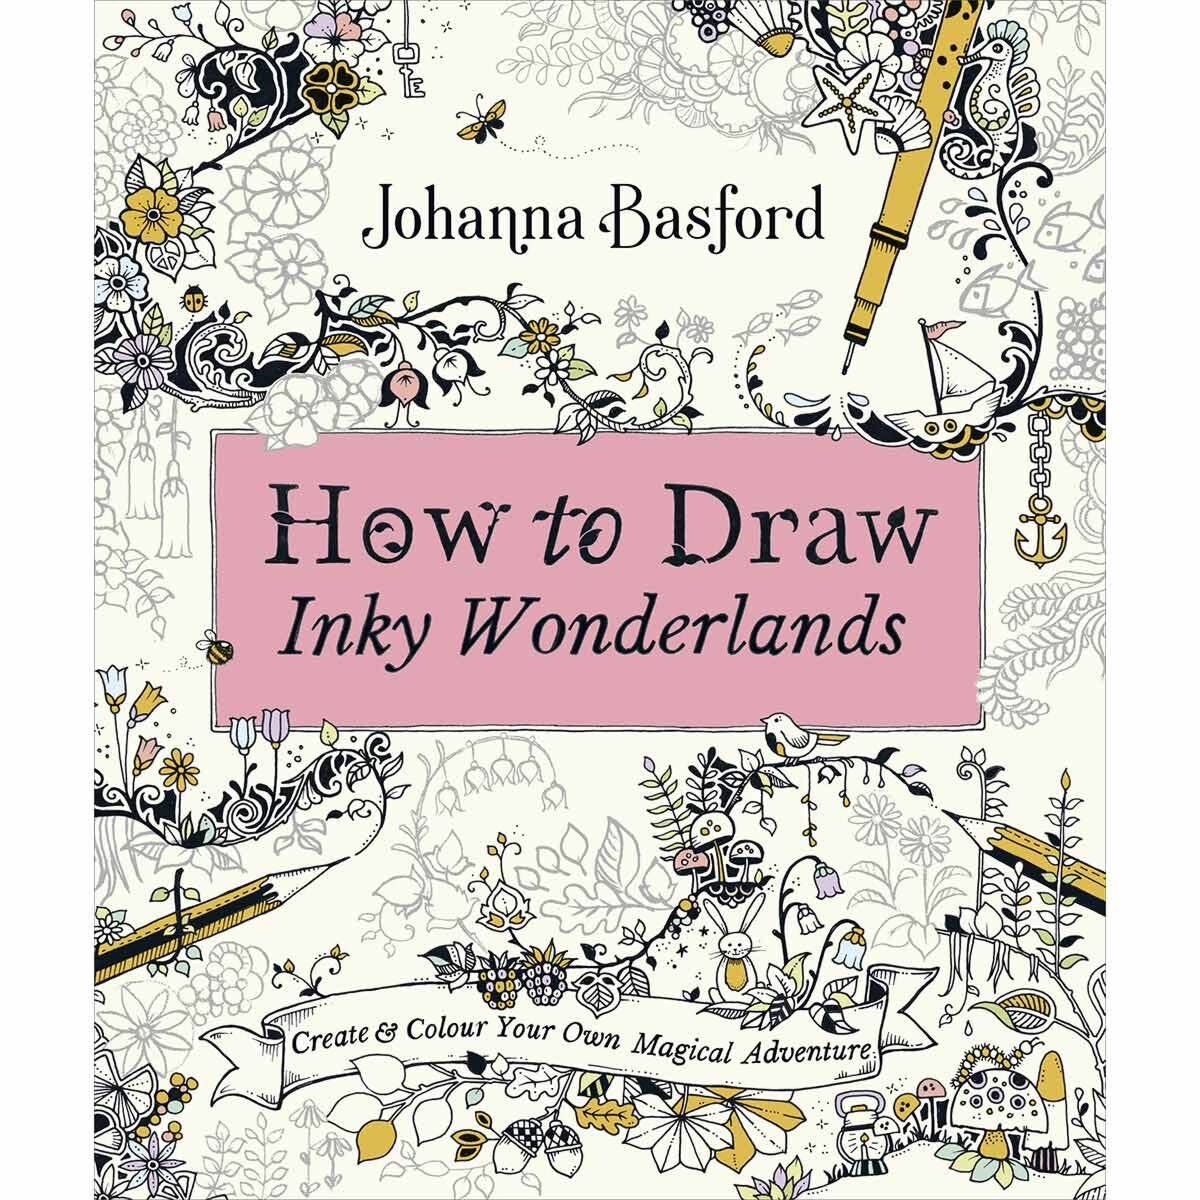 Johanna Basfords How to Draw Inky Wonderlands Colouring Book